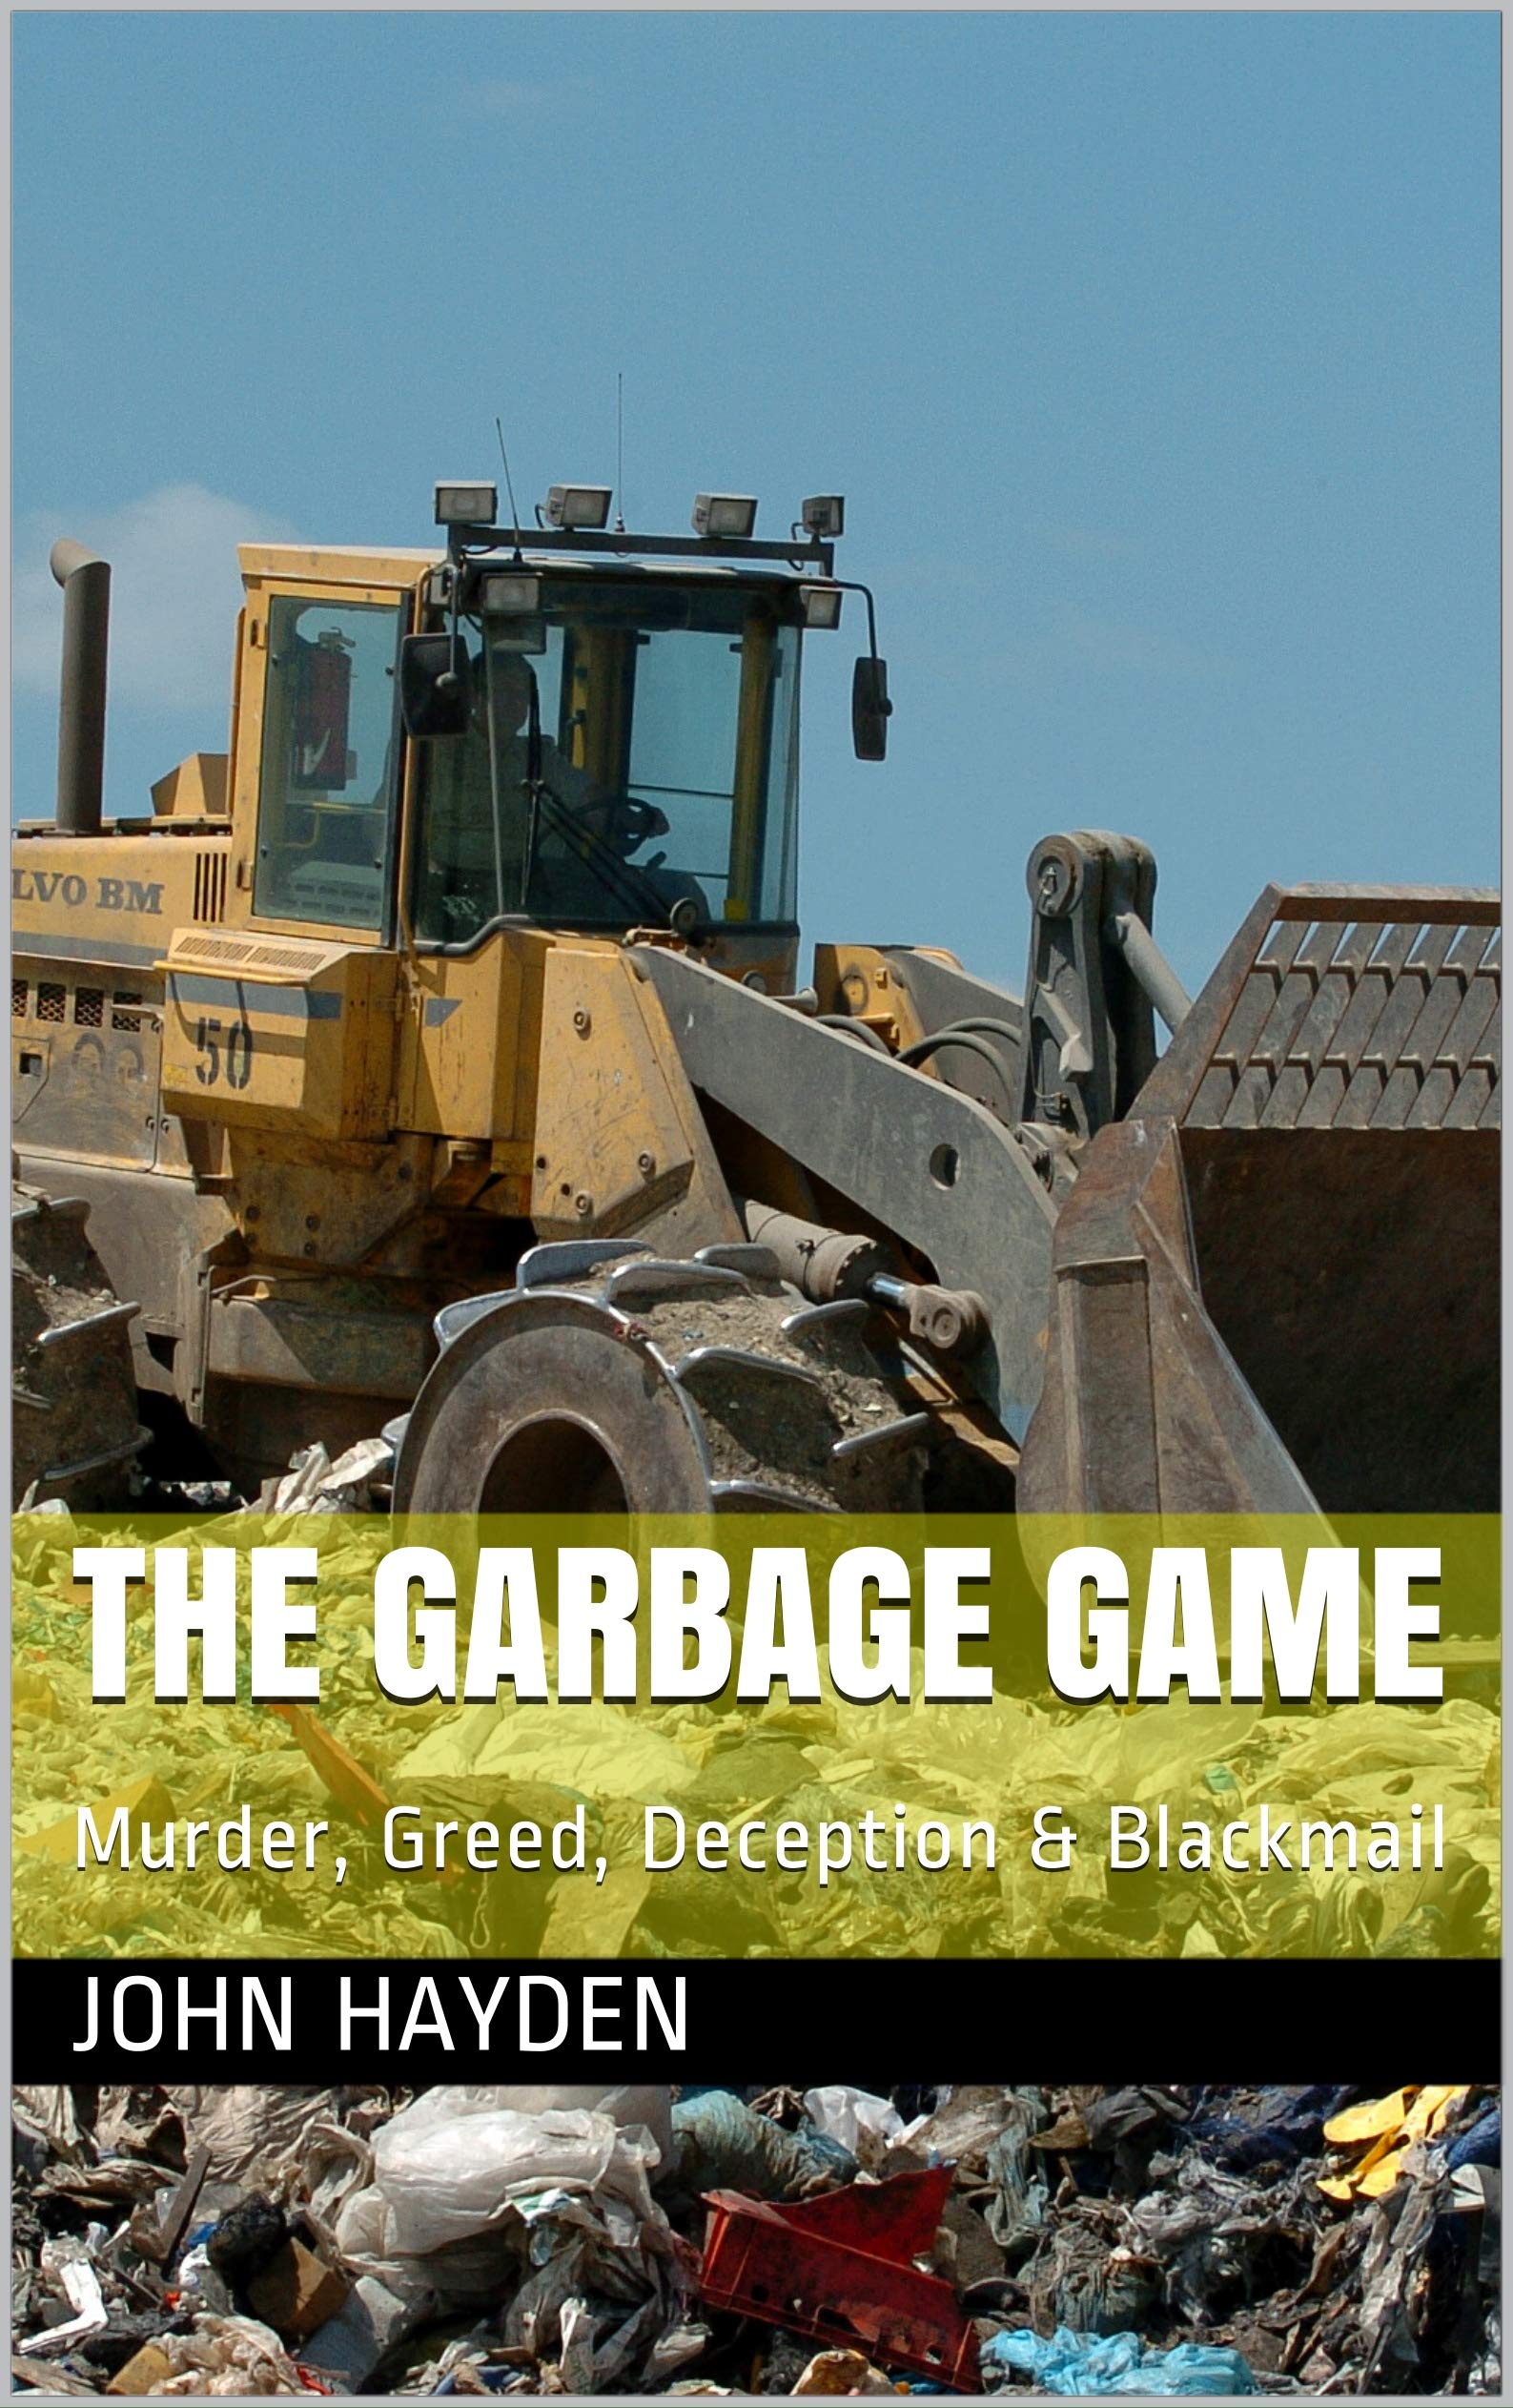 THE GARBAGE GAME: Murder, Greed, Deception & Blackmail